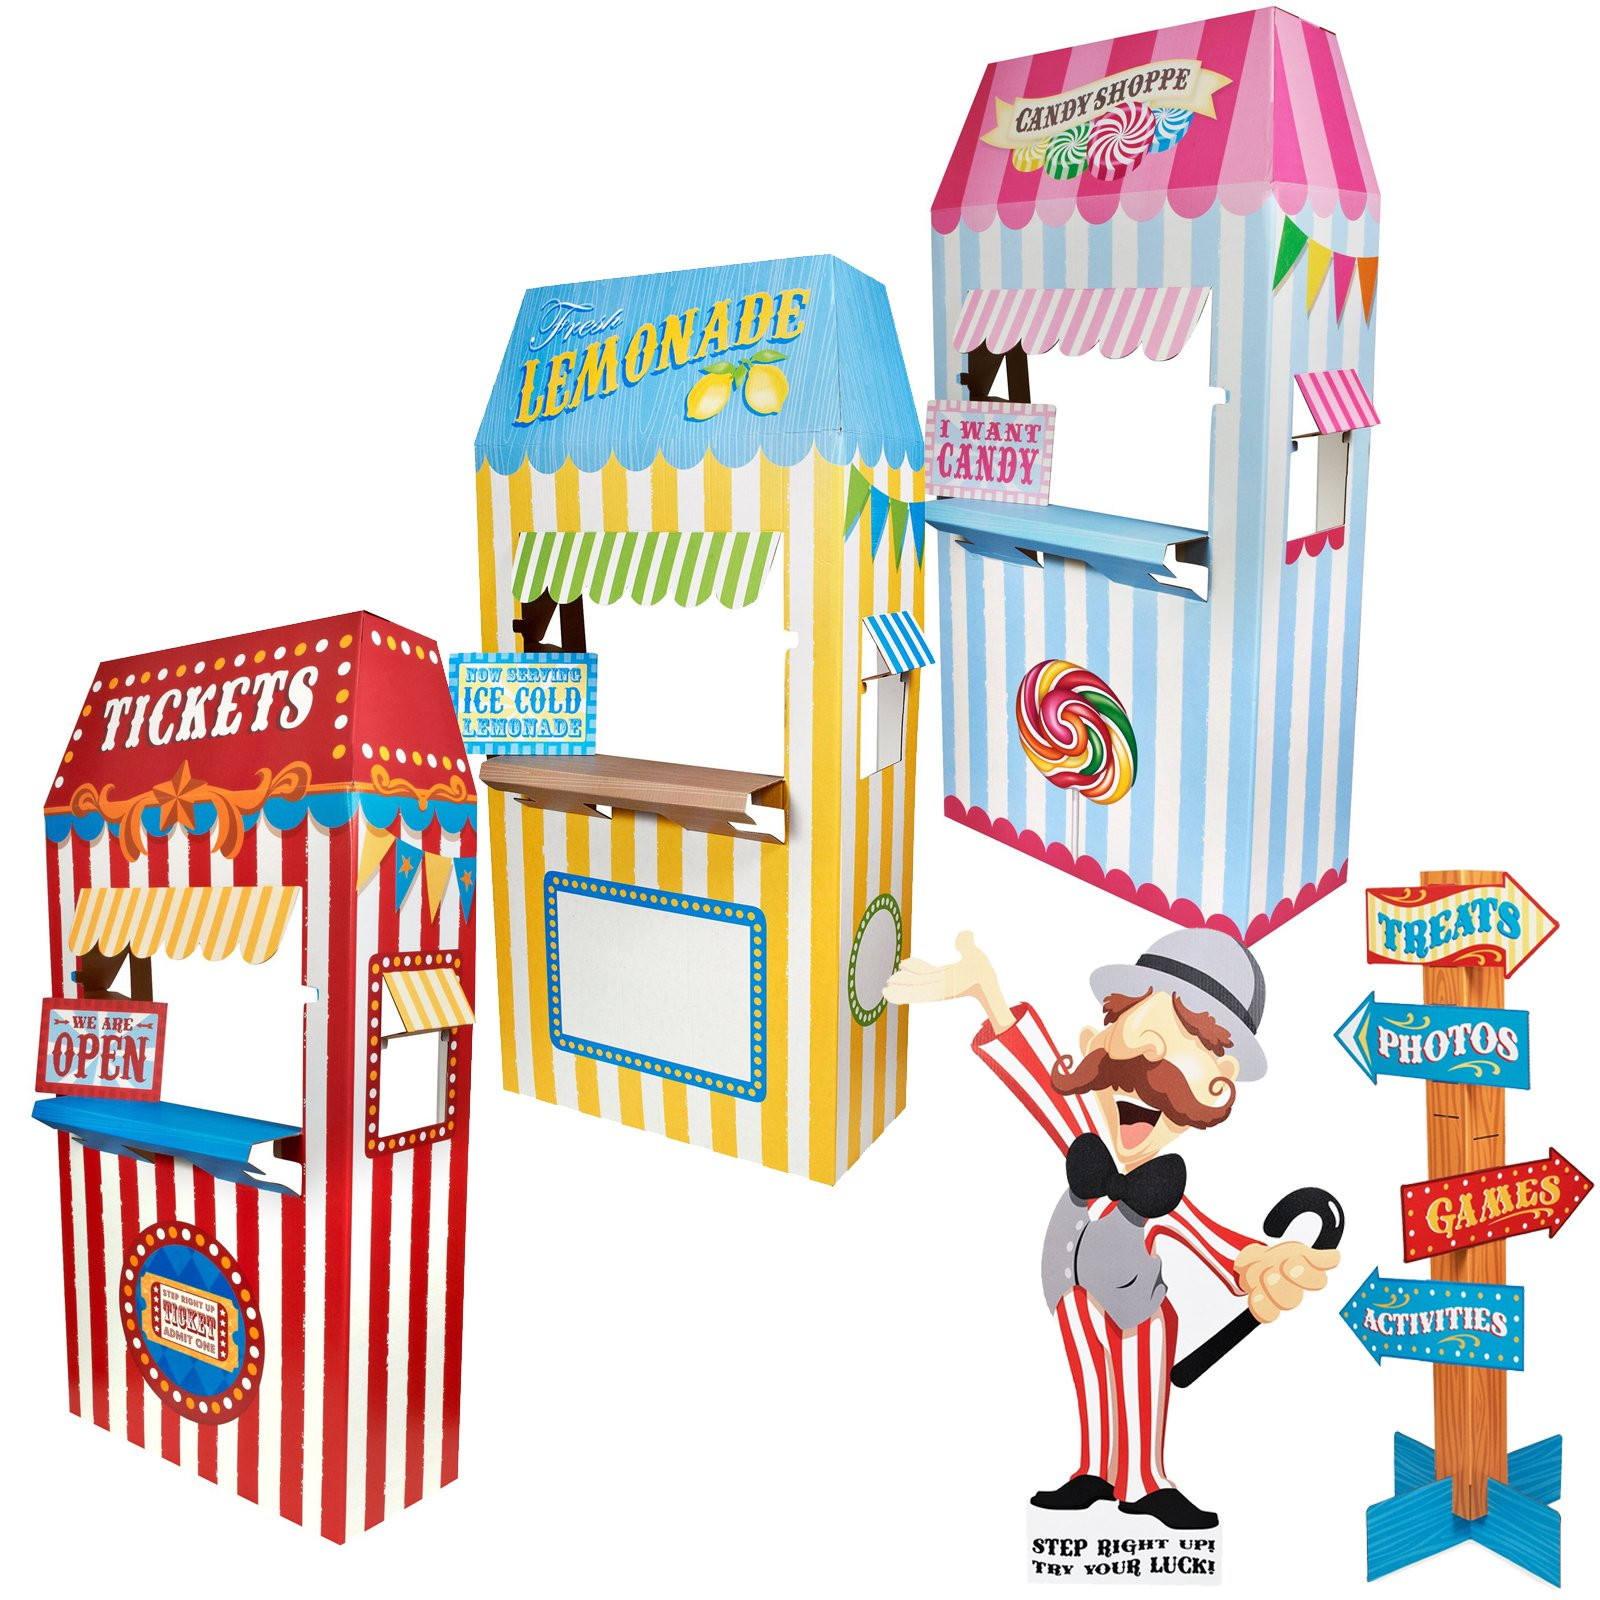 Carnival Games Room Decor - Standup Kit